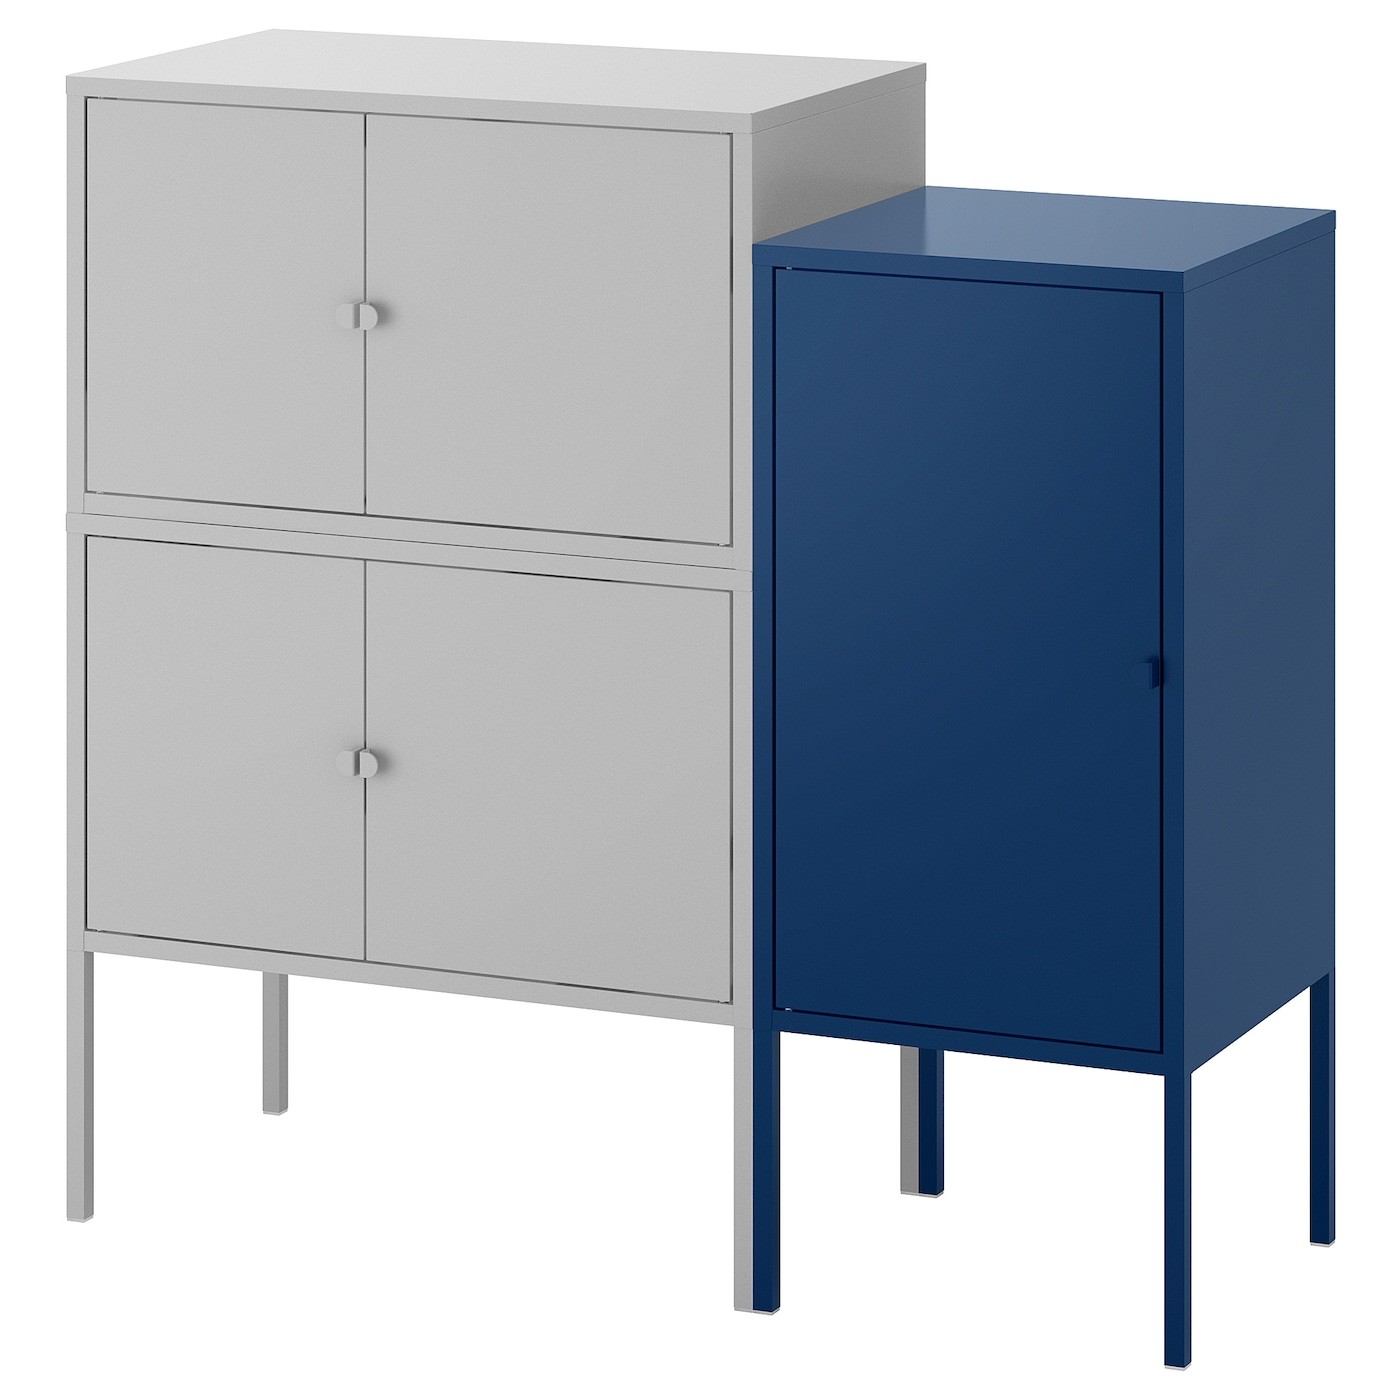 lixhult combinaison rangement gris bleu fonc 95x35x92 cm ikea. Black Bedroom Furniture Sets. Home Design Ideas